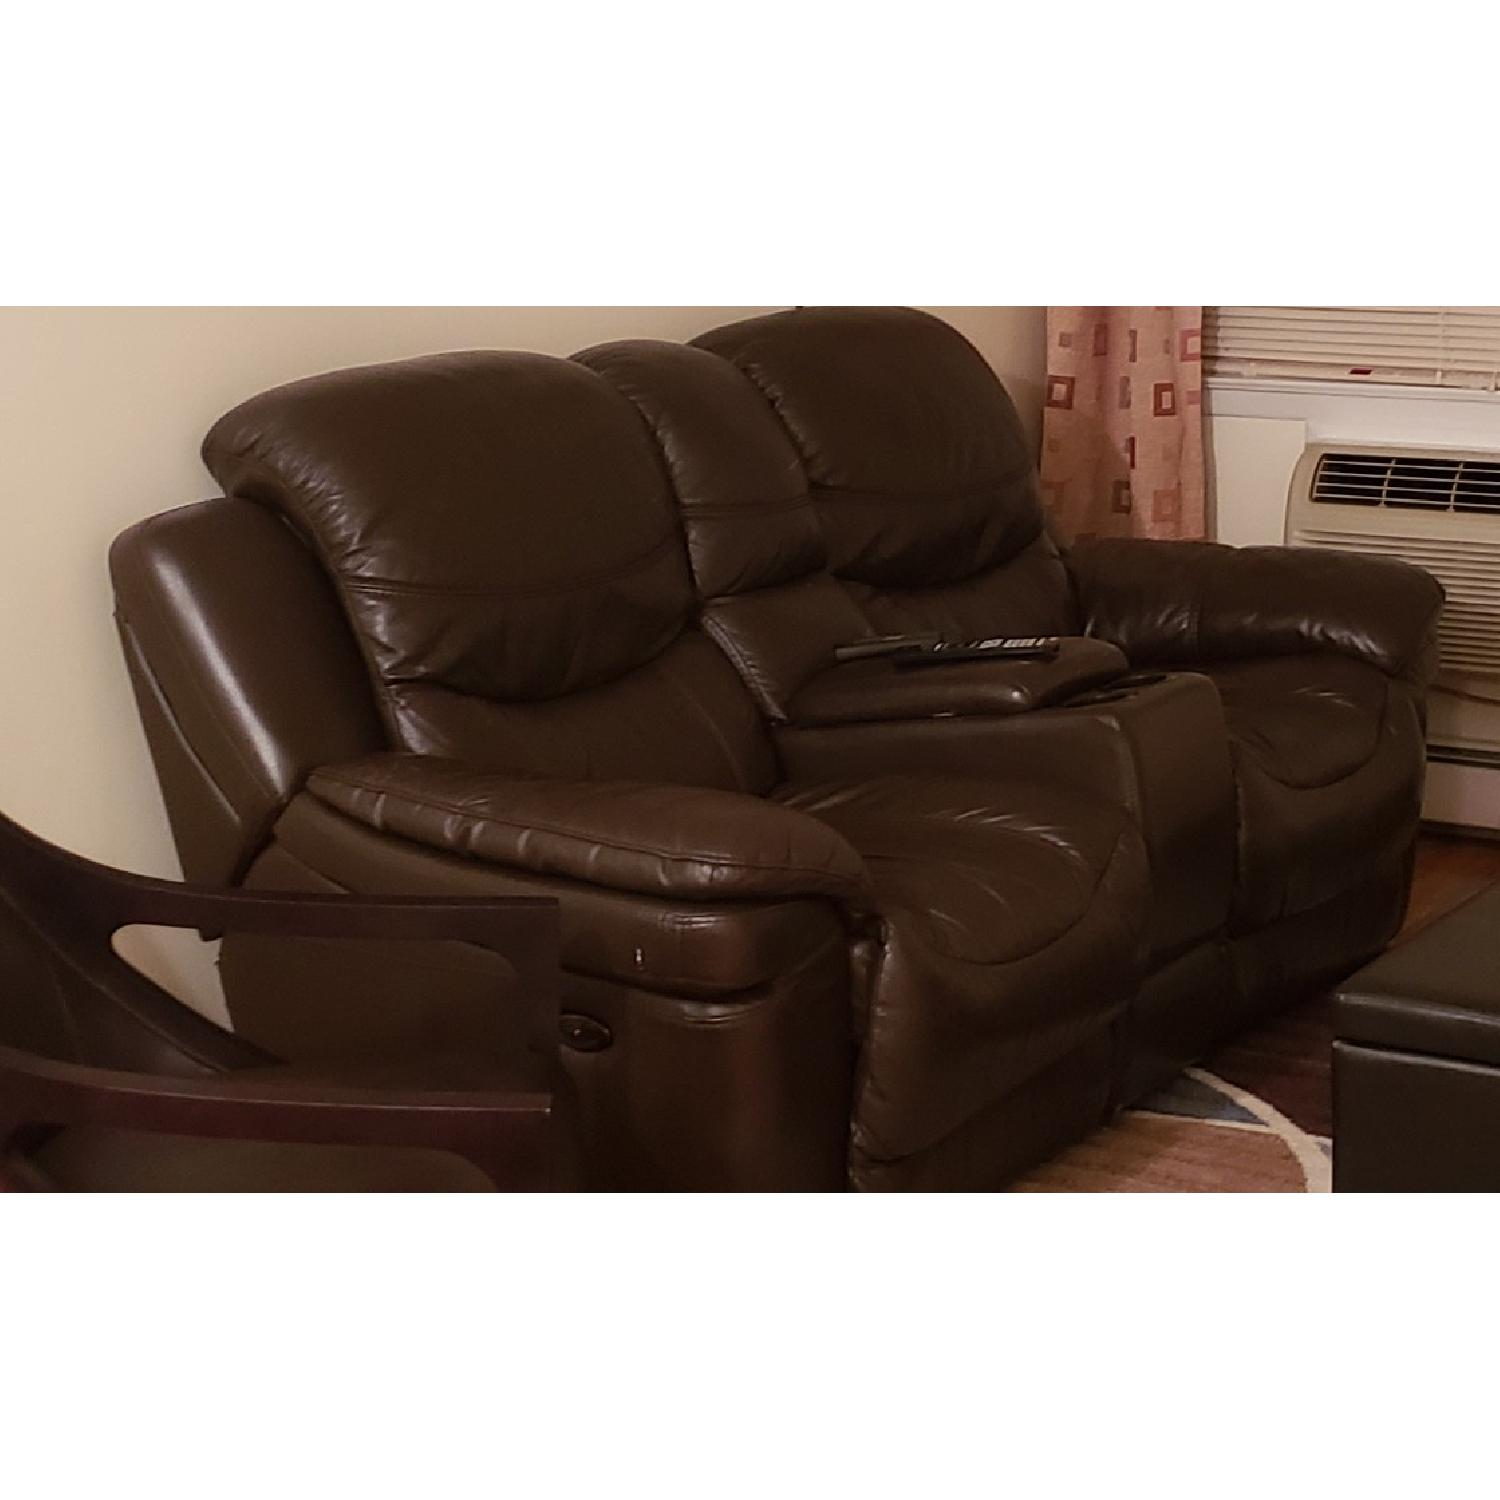 Brown Leather Reclining Sofa - image-1